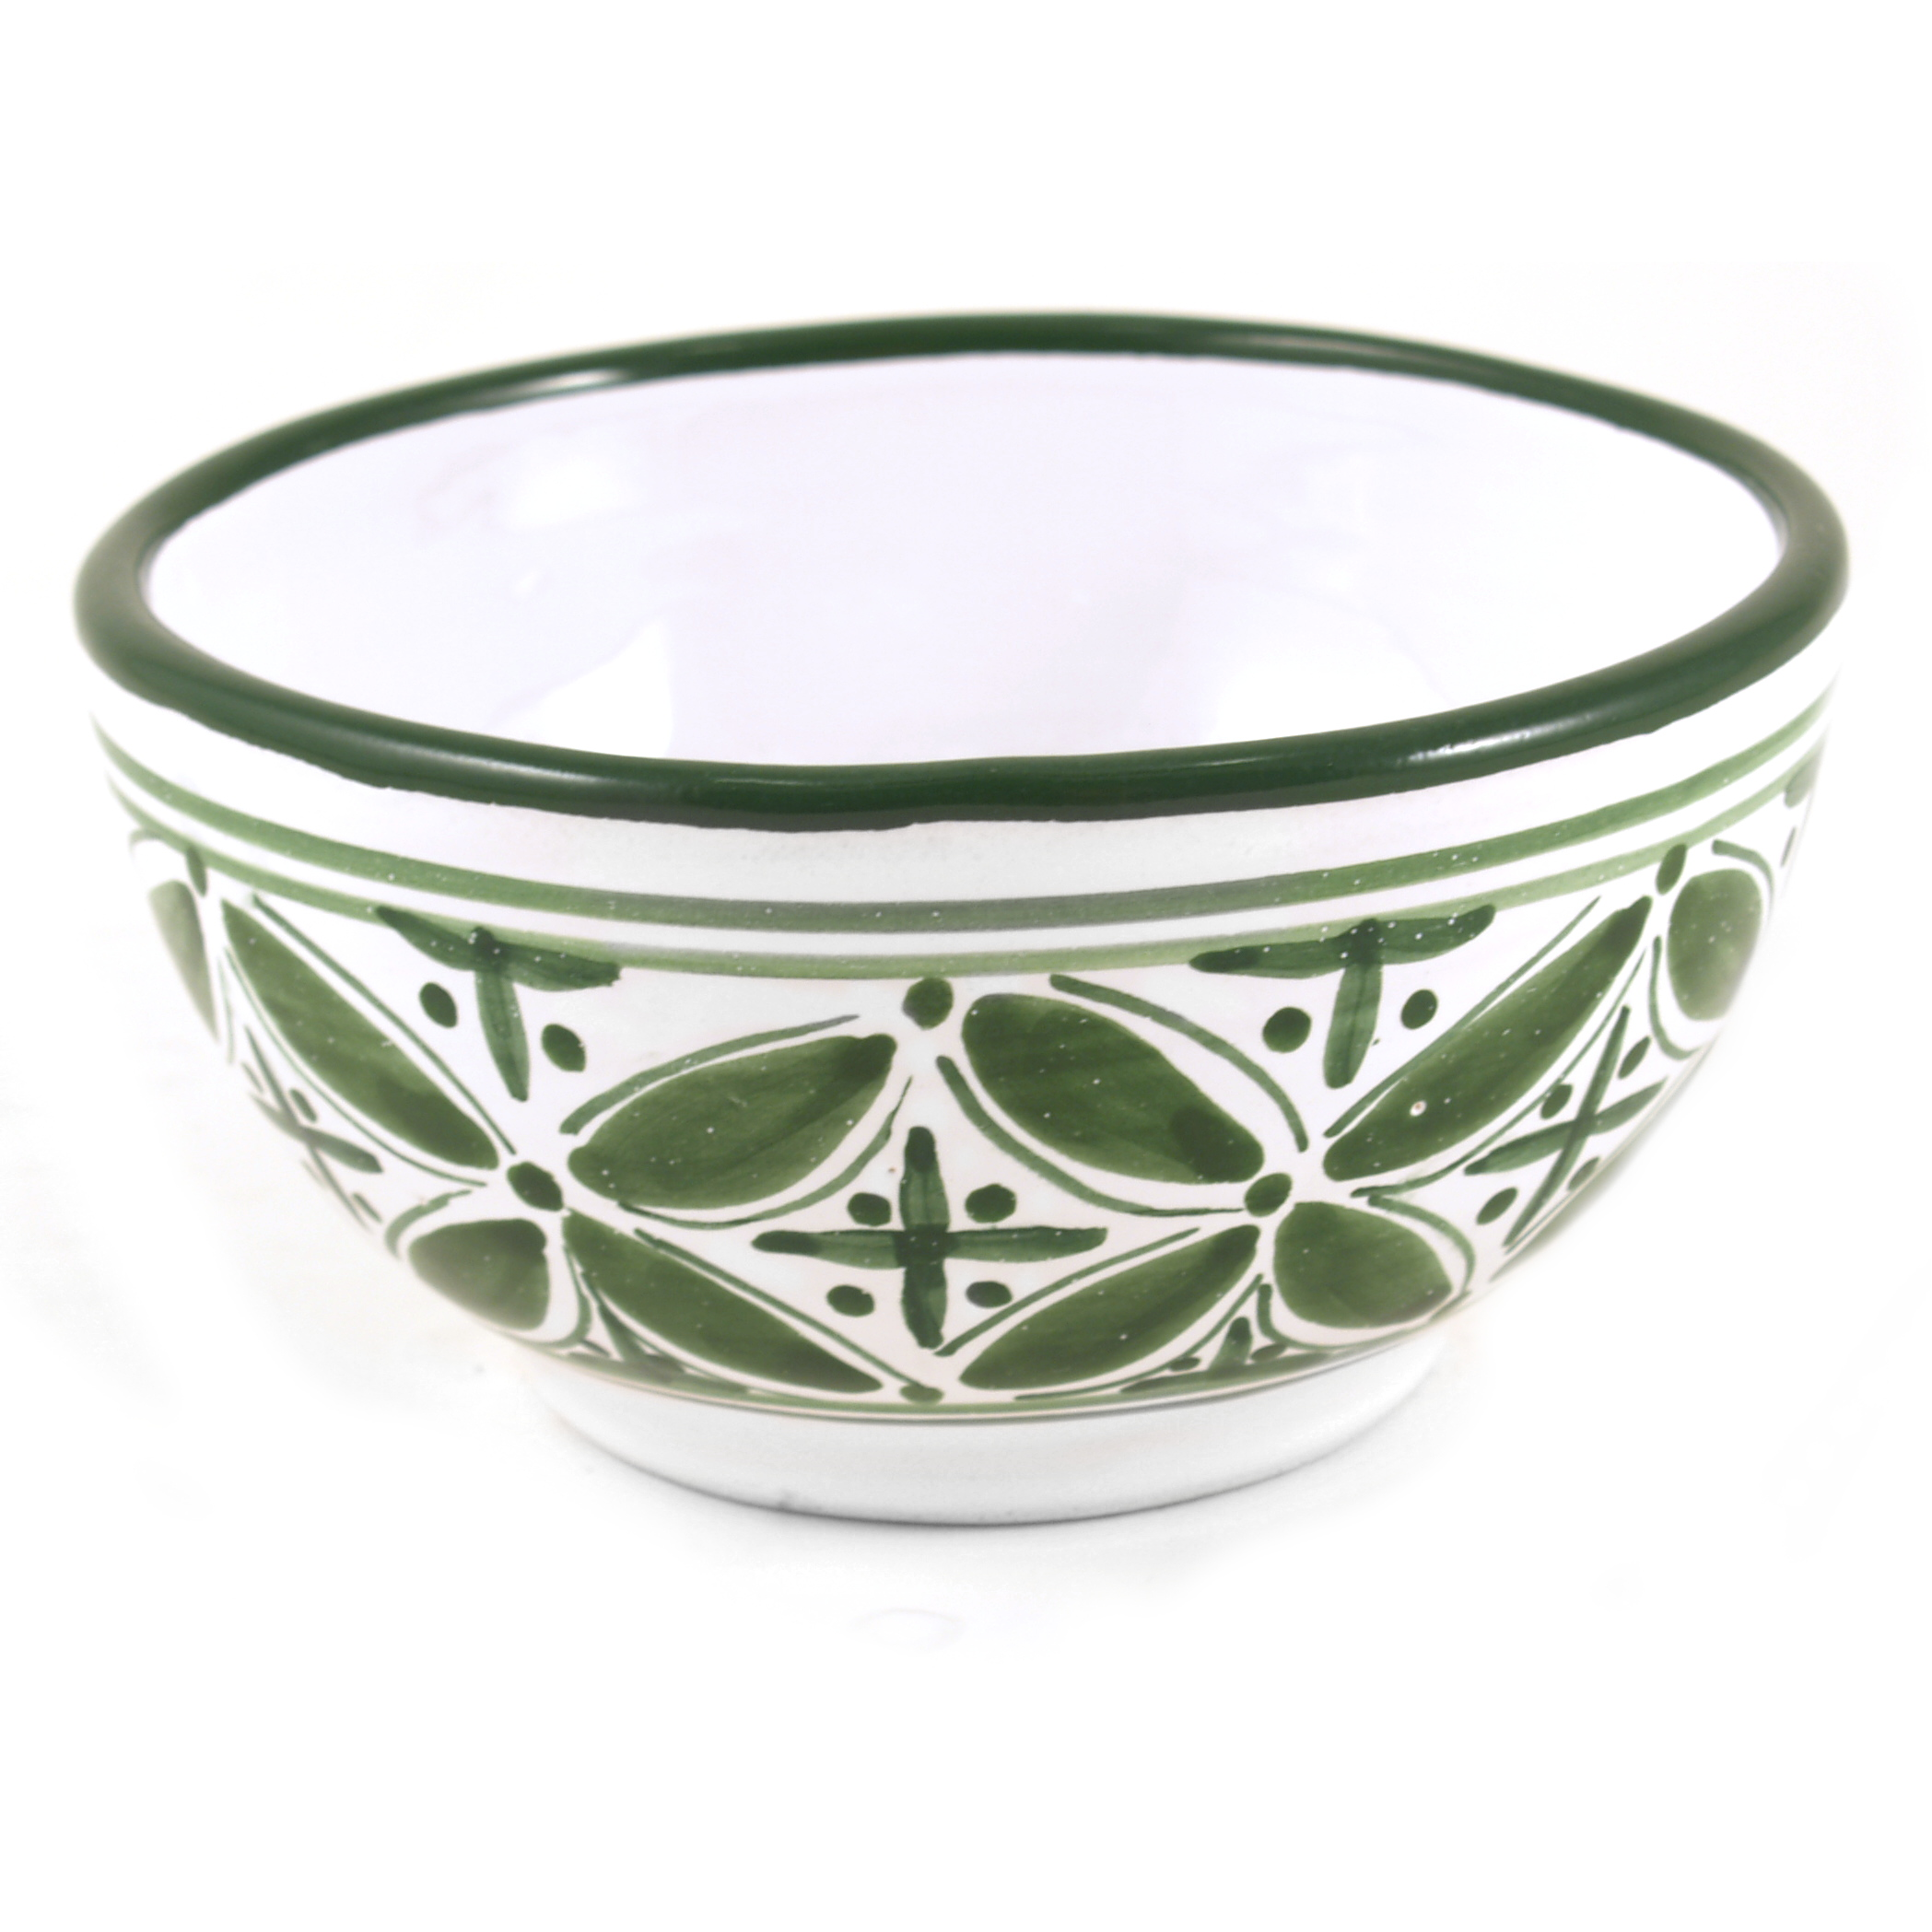 Sobremesa Fairtrade Fez Collection Handmade White and Green Ceramic Serving Bowl